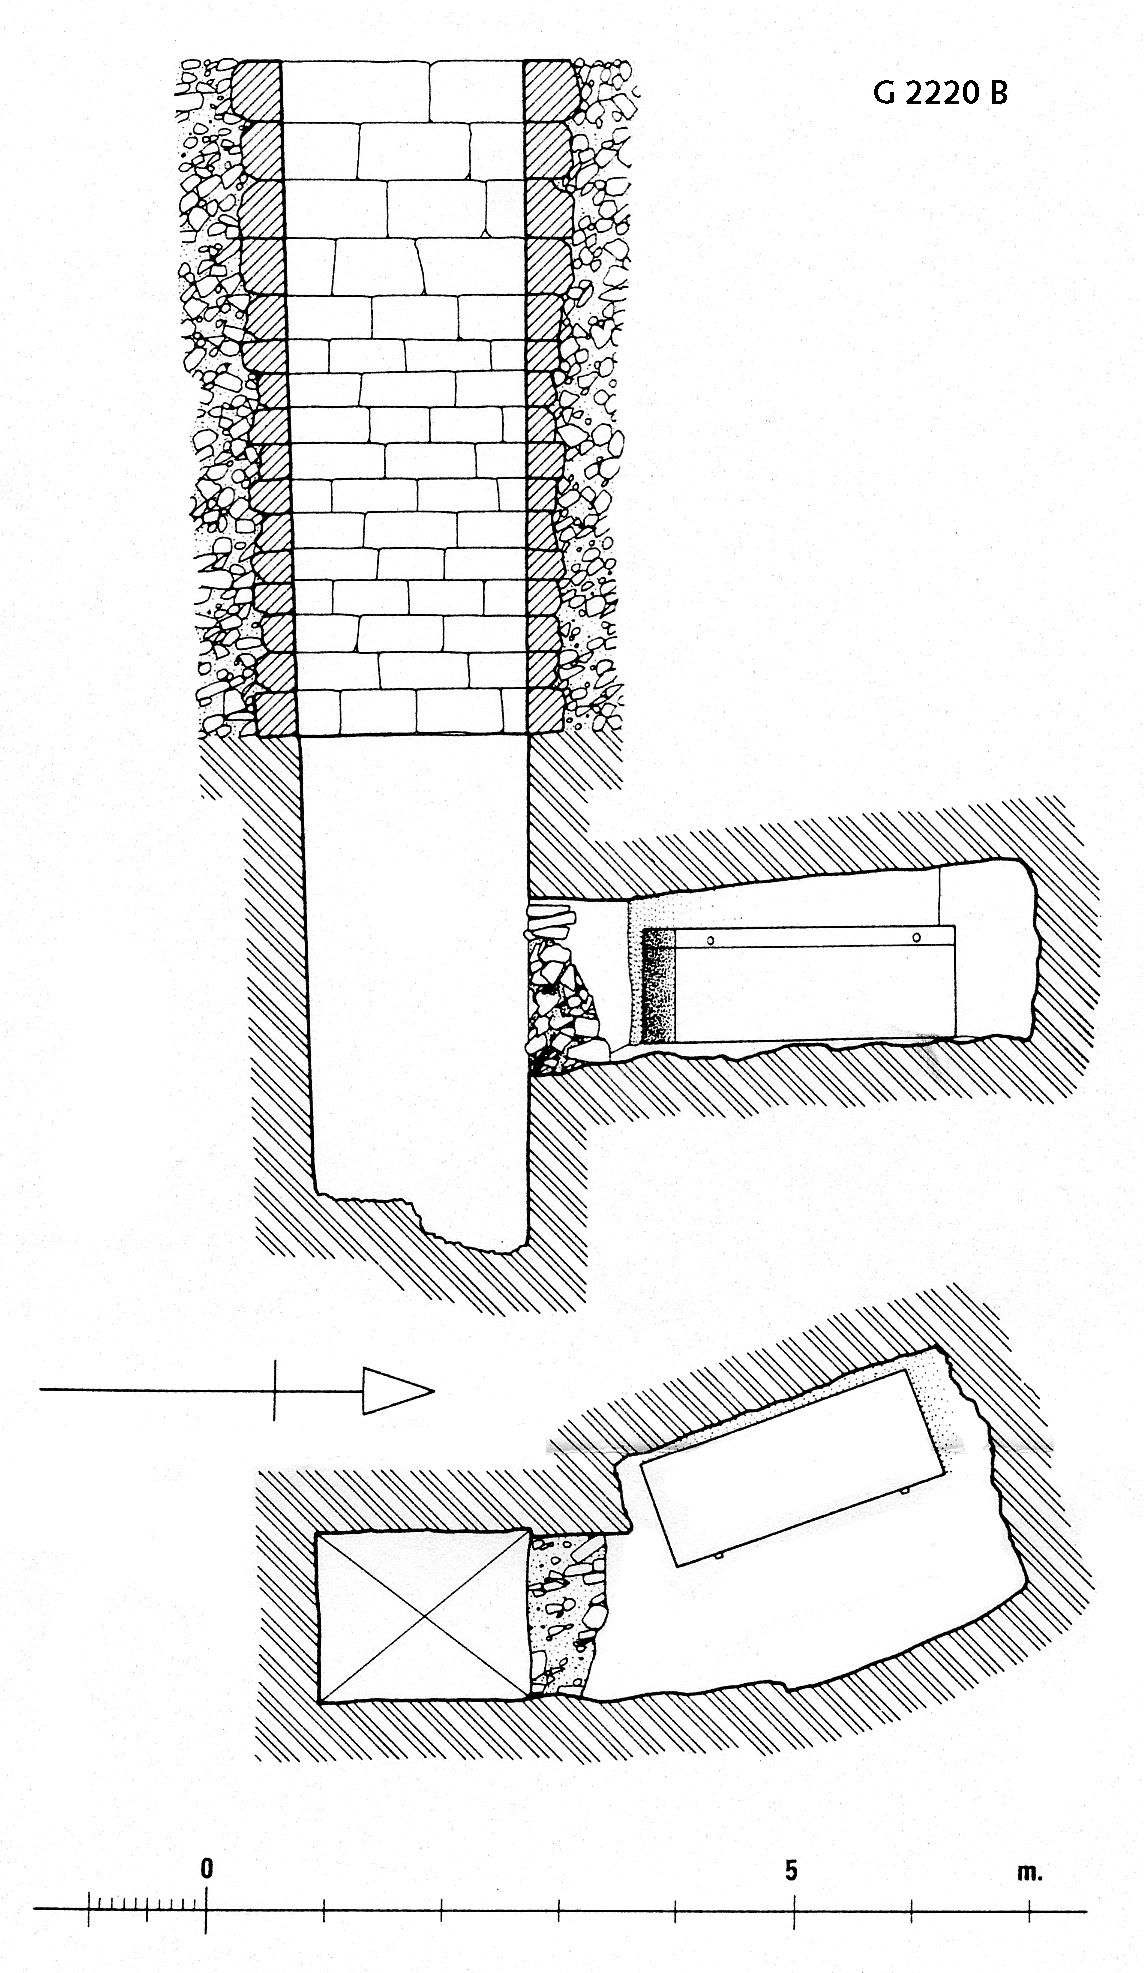 Maps and plans: G 2220, Shaft B